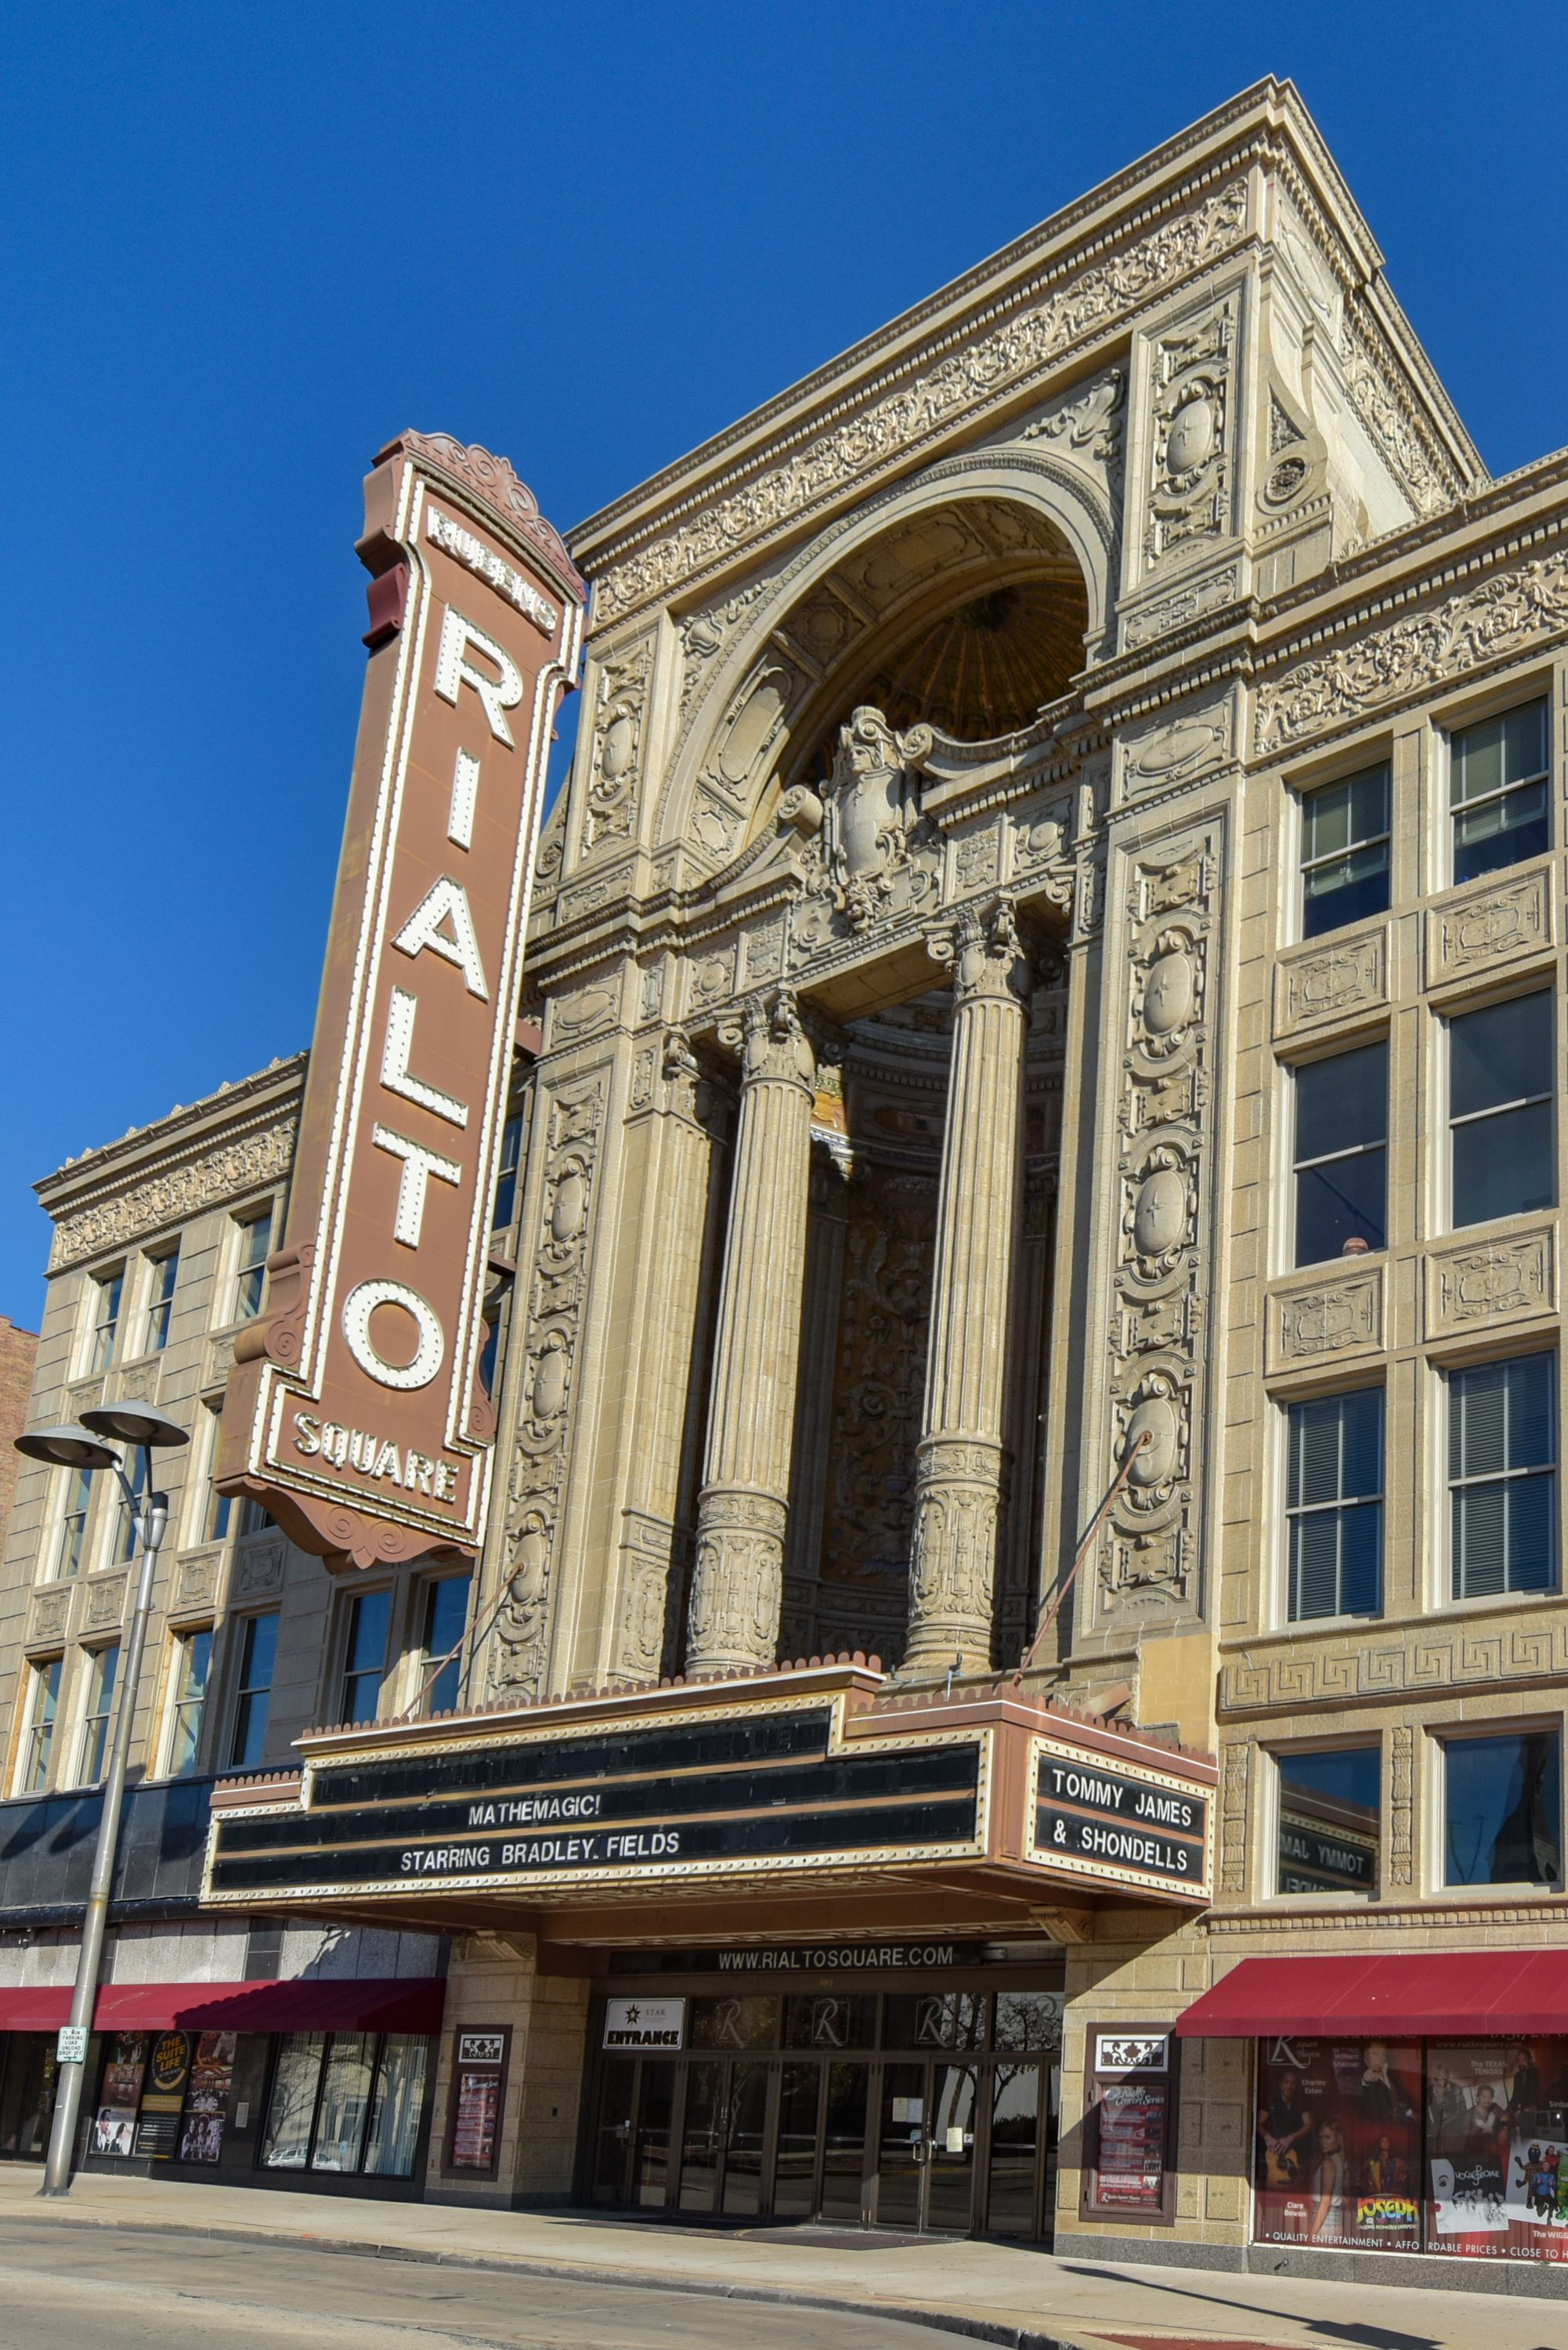 Rialto Theatre Joliet Like Us To Start Each Day With A Photo Call